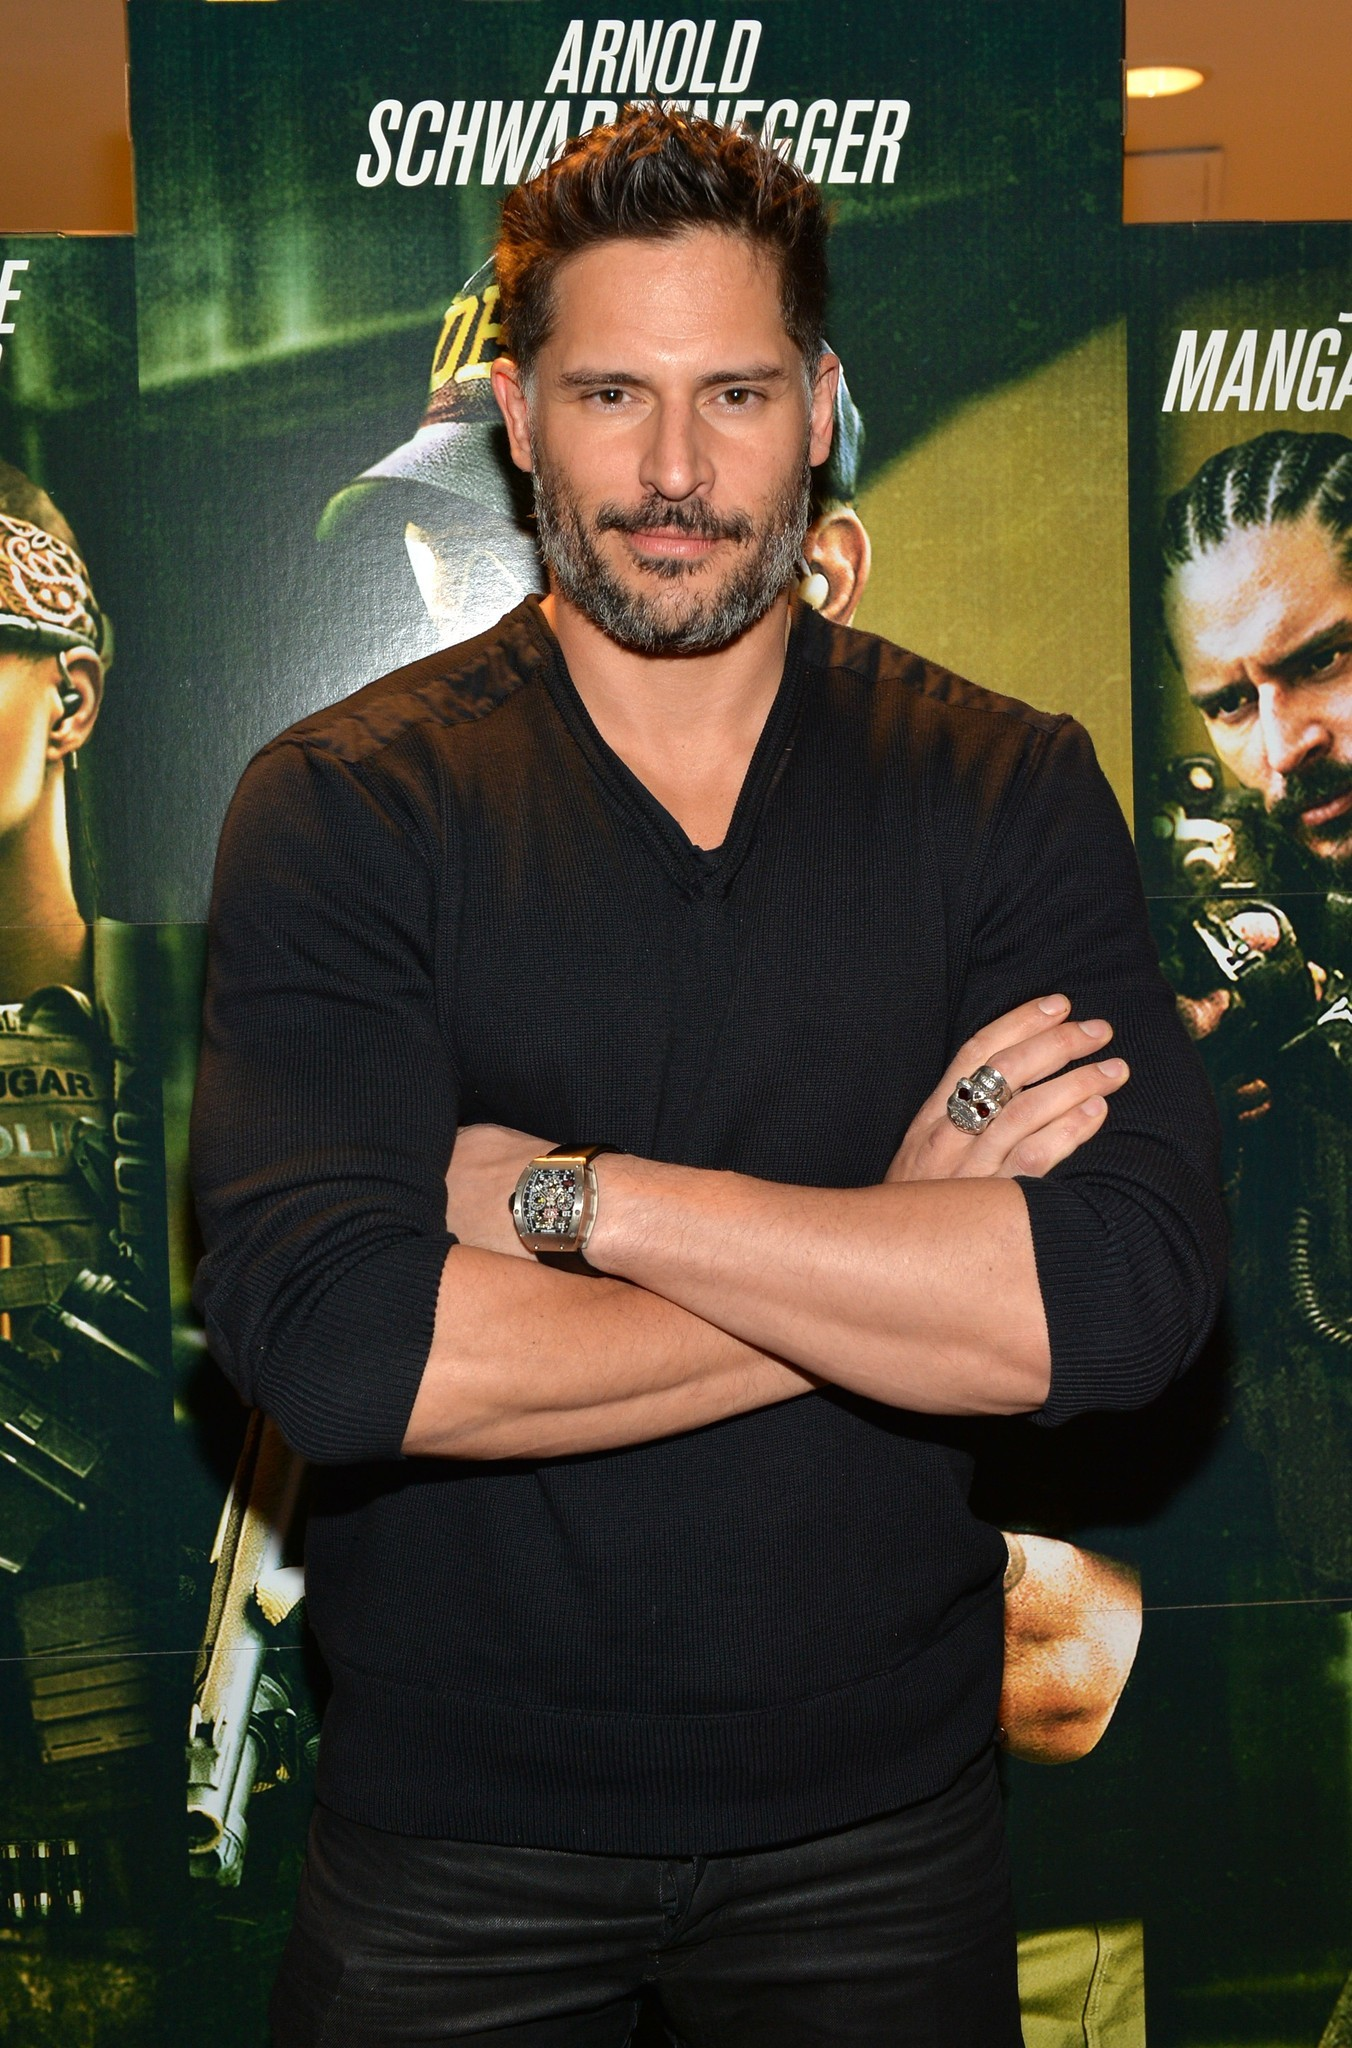 Celeb-spotting around South Florida - Joe Manganiello